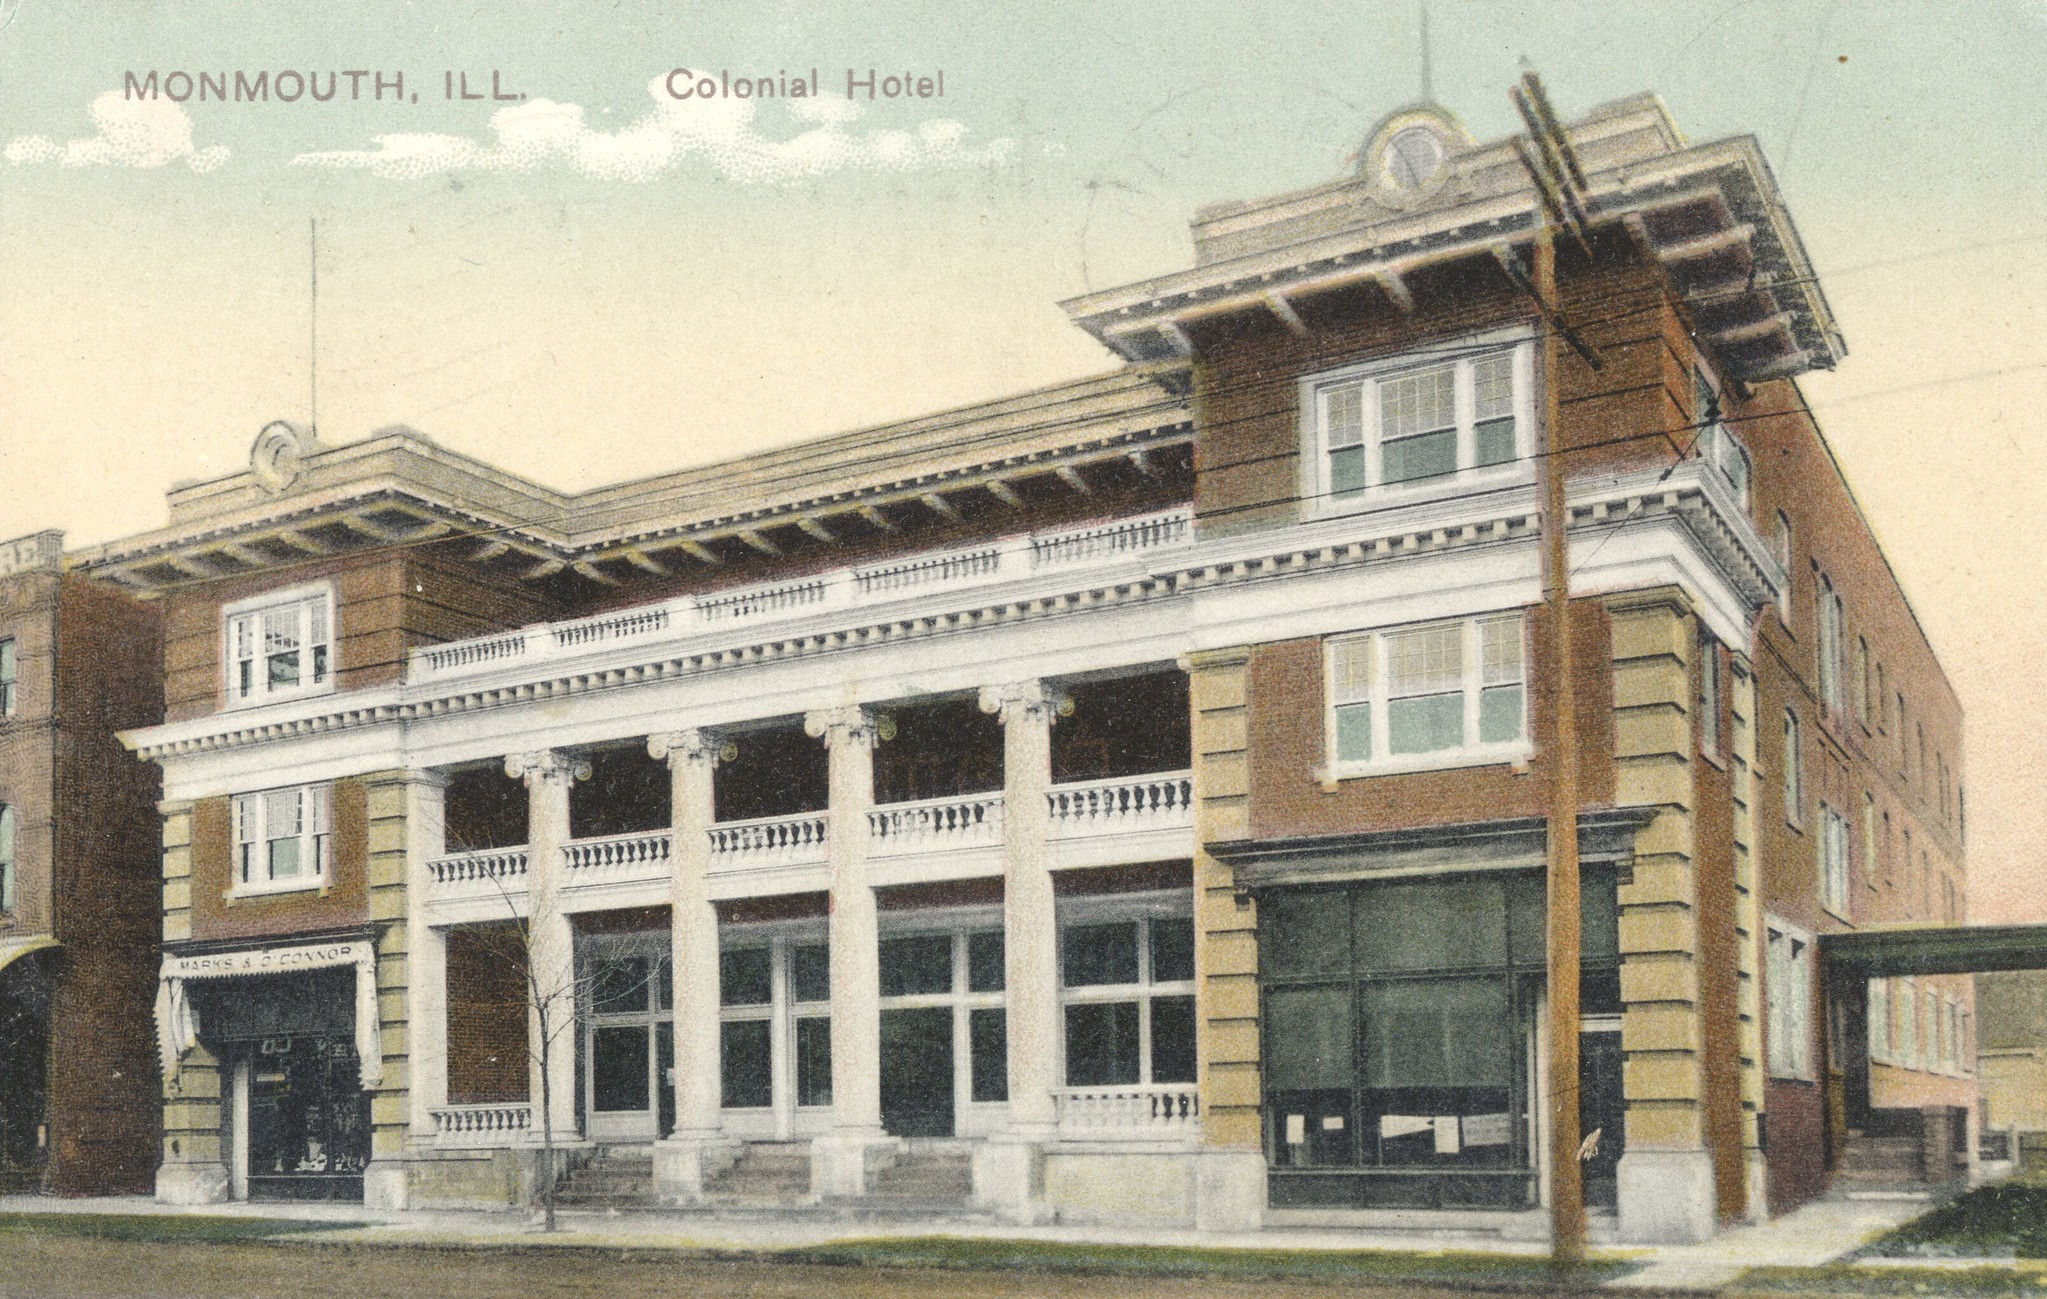 Colonial Hotel - Monmouth, Illinois